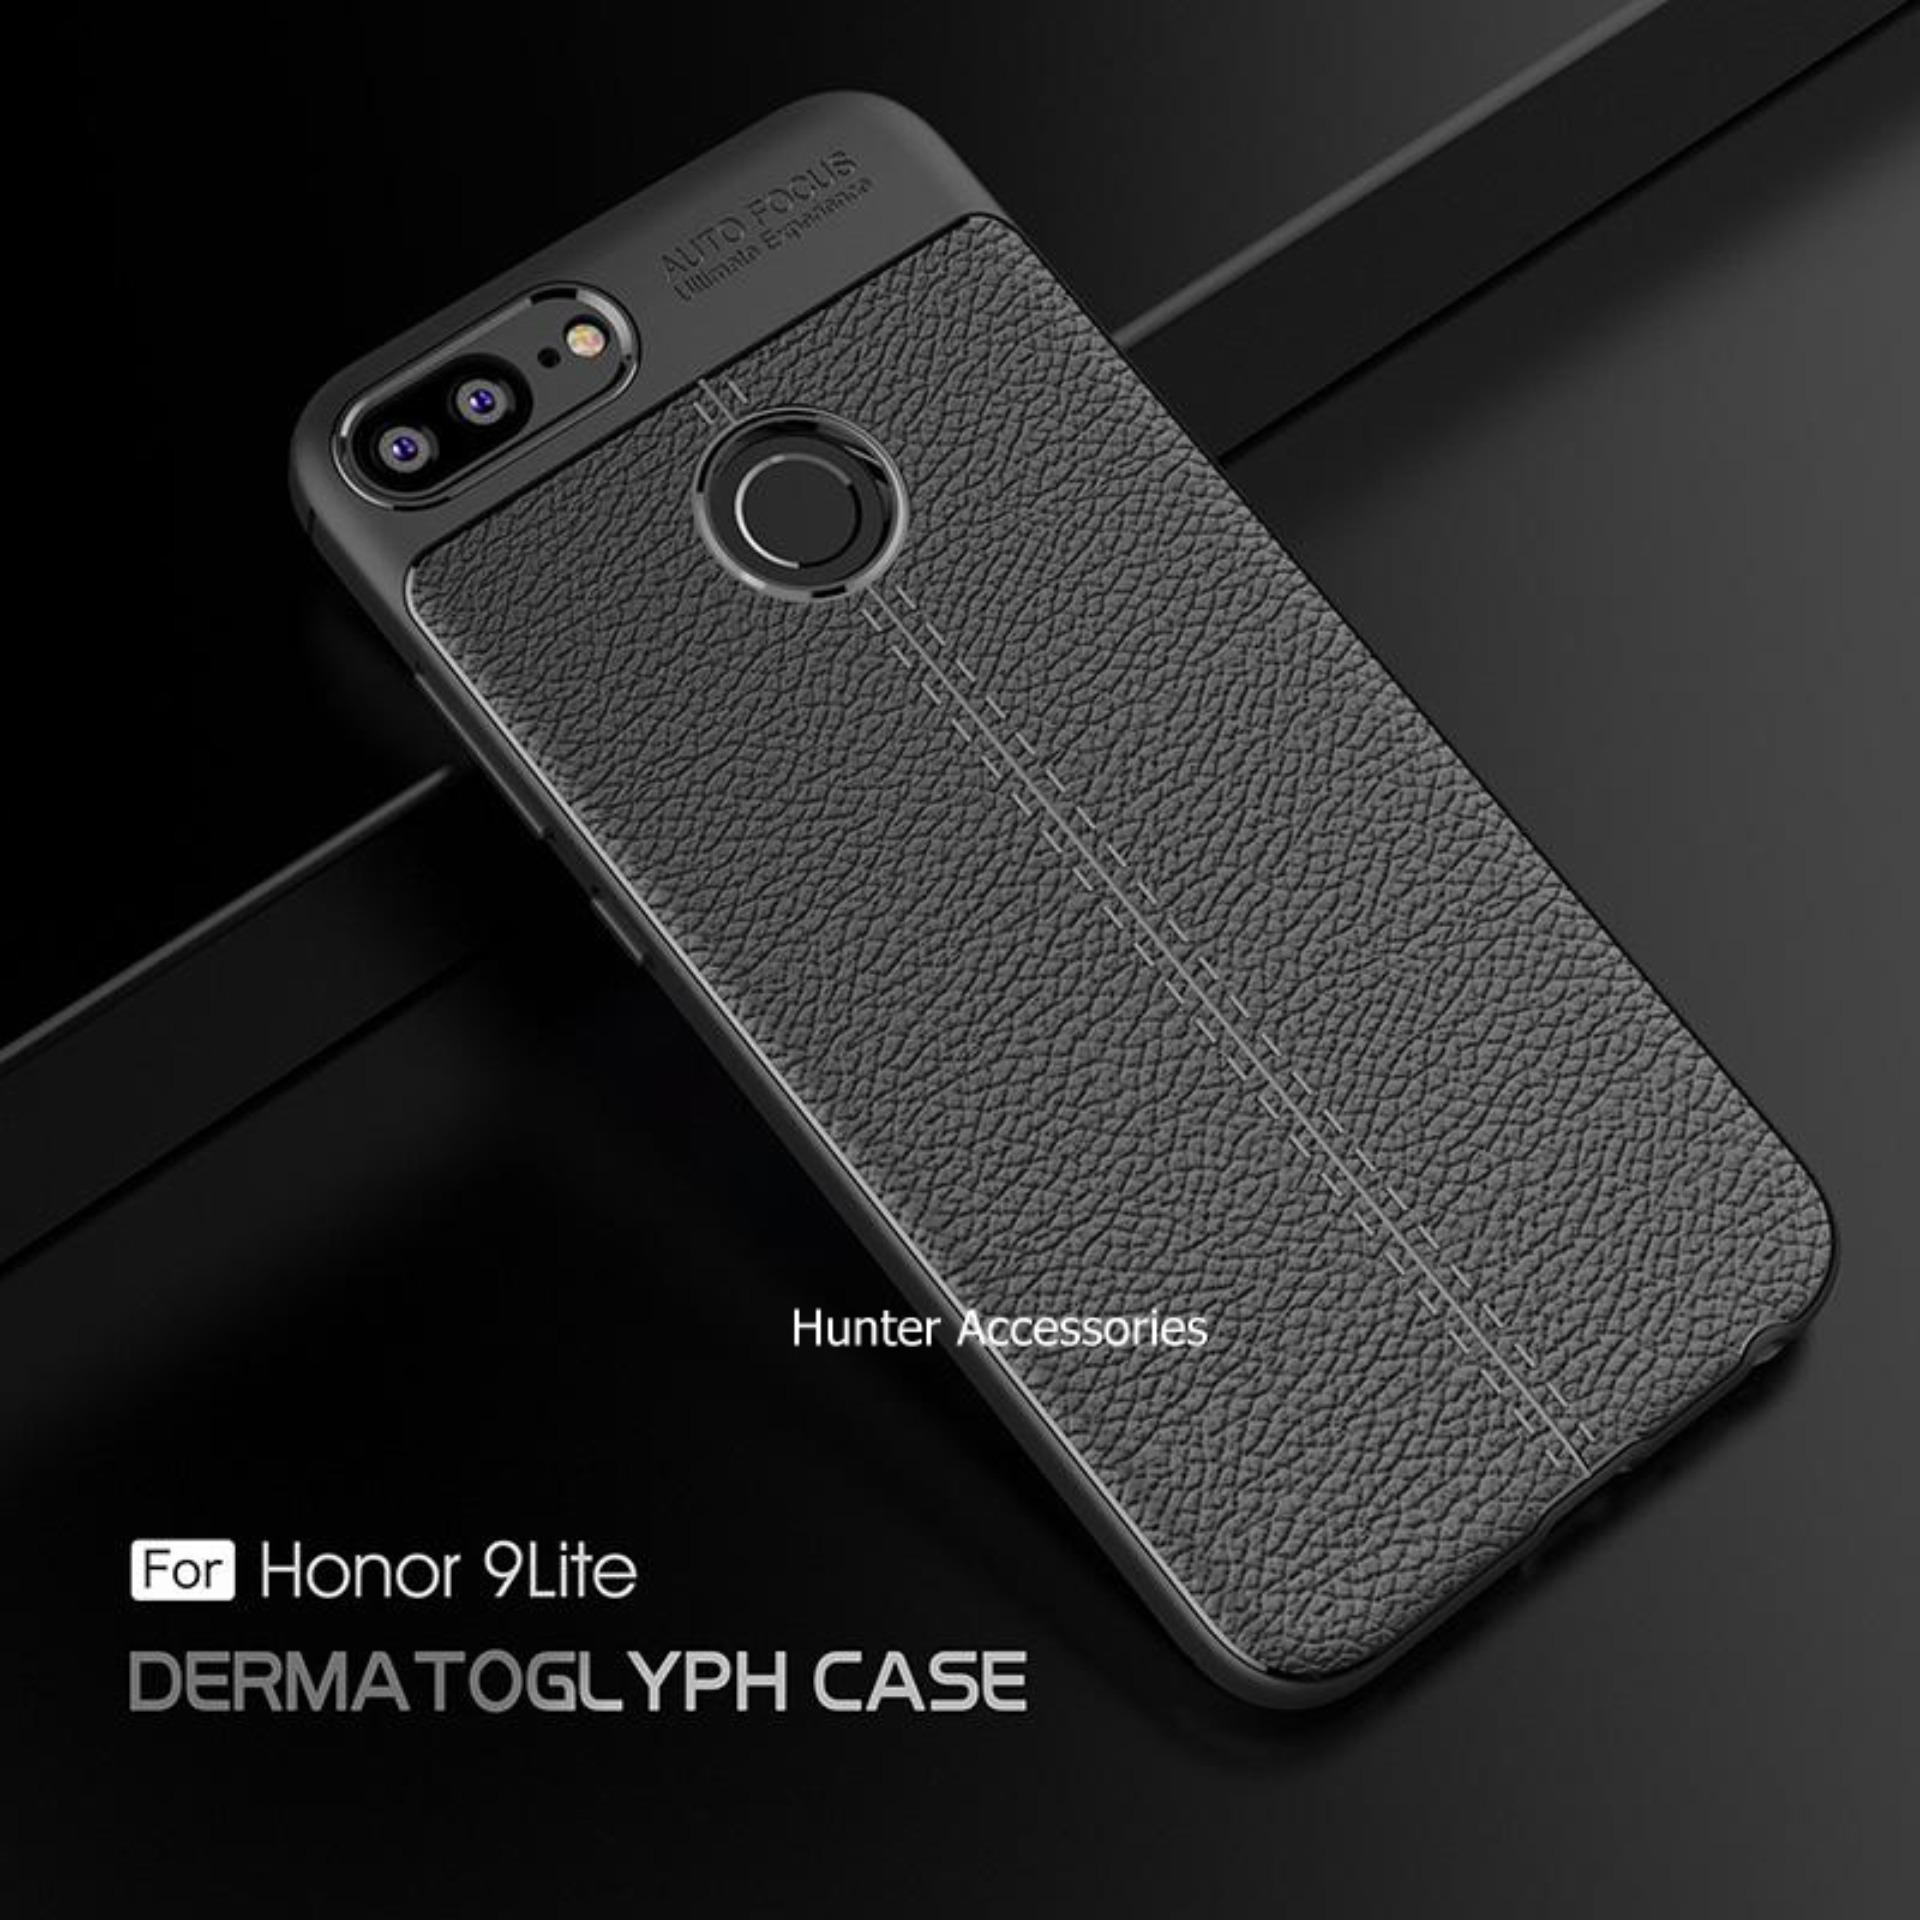 Ambigo Premium Case Huawei Honor 9 Lite Luxury Ultimate Autofocus TPU Leather - Black